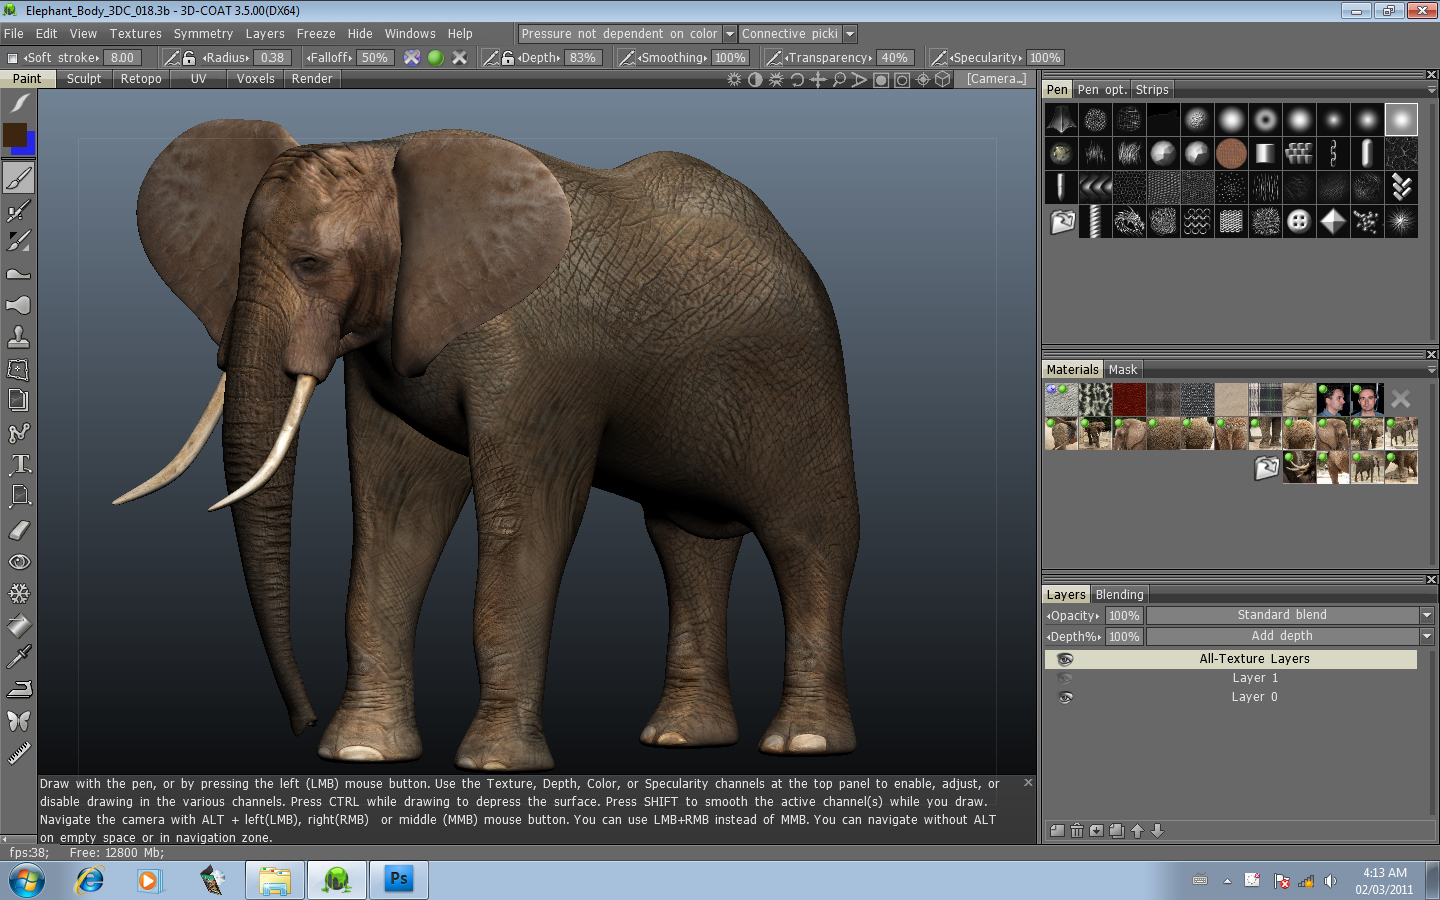 NEW VIDEO 3D Coat 35 Photo Painting I Paint an Elephant Using